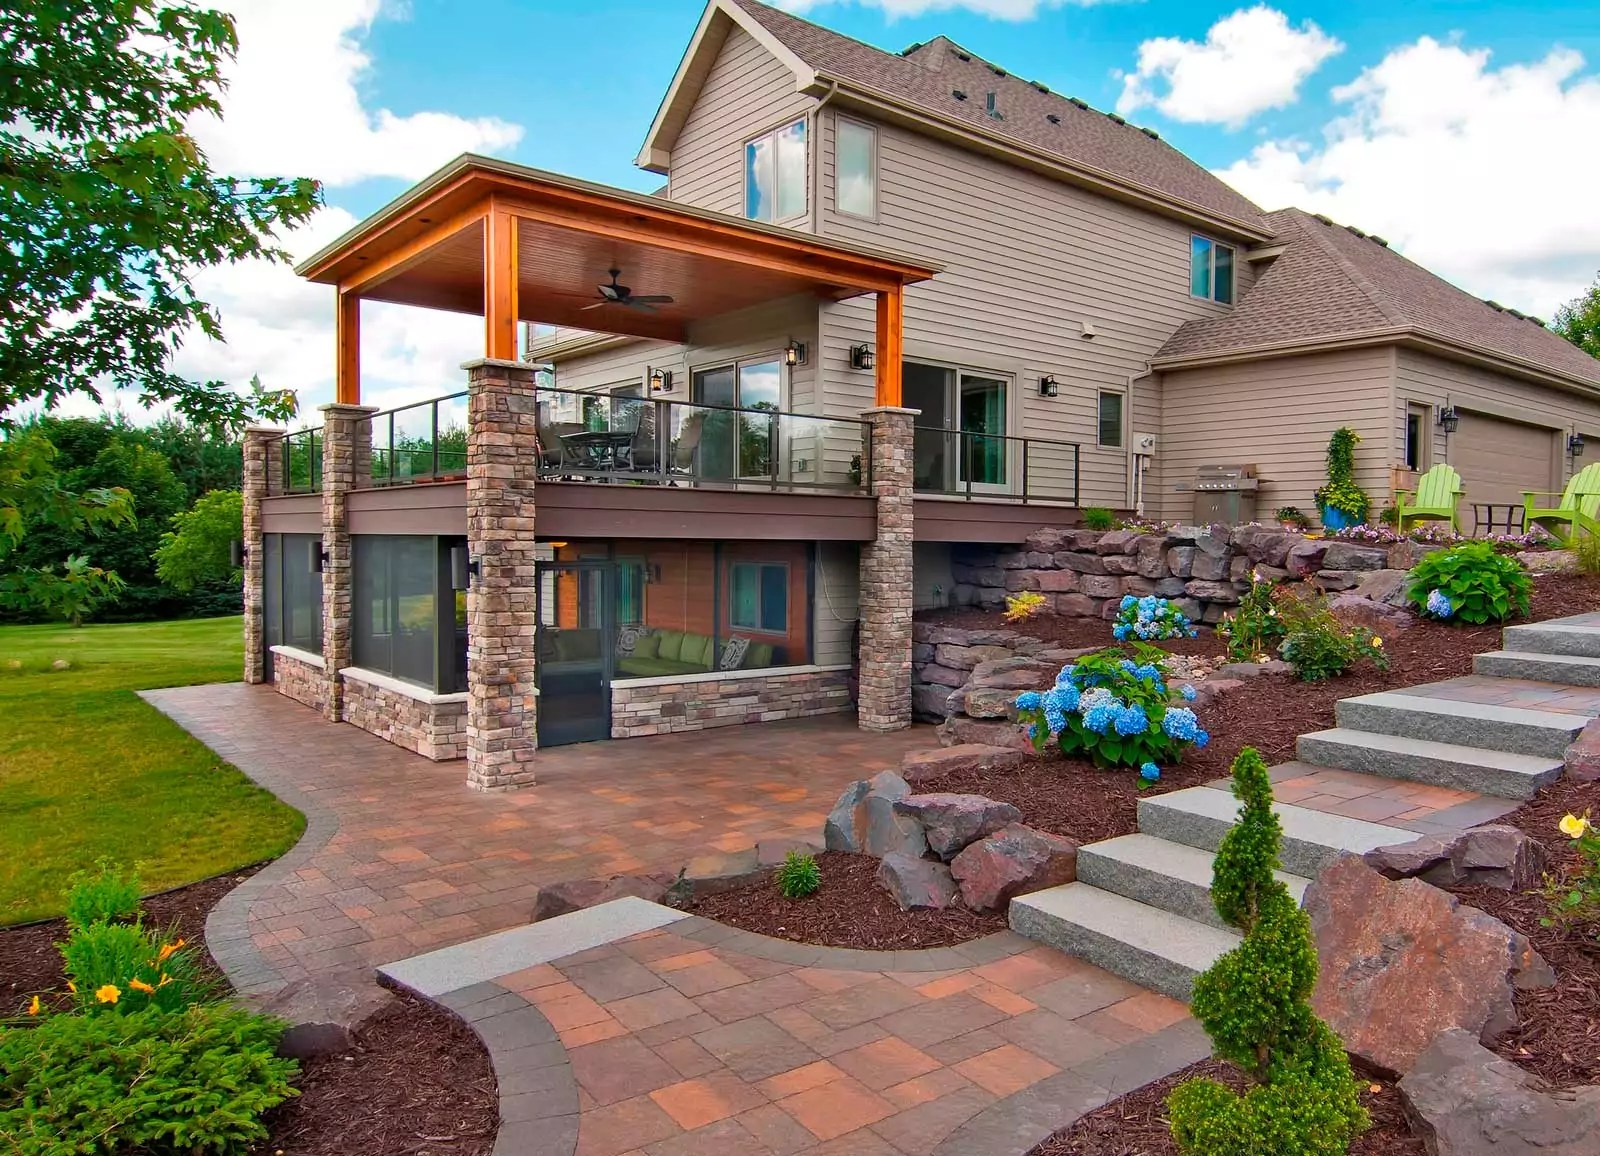 Outdoor Living Space Remodeling Services | James Barton ... on Garden Living Space id=94742